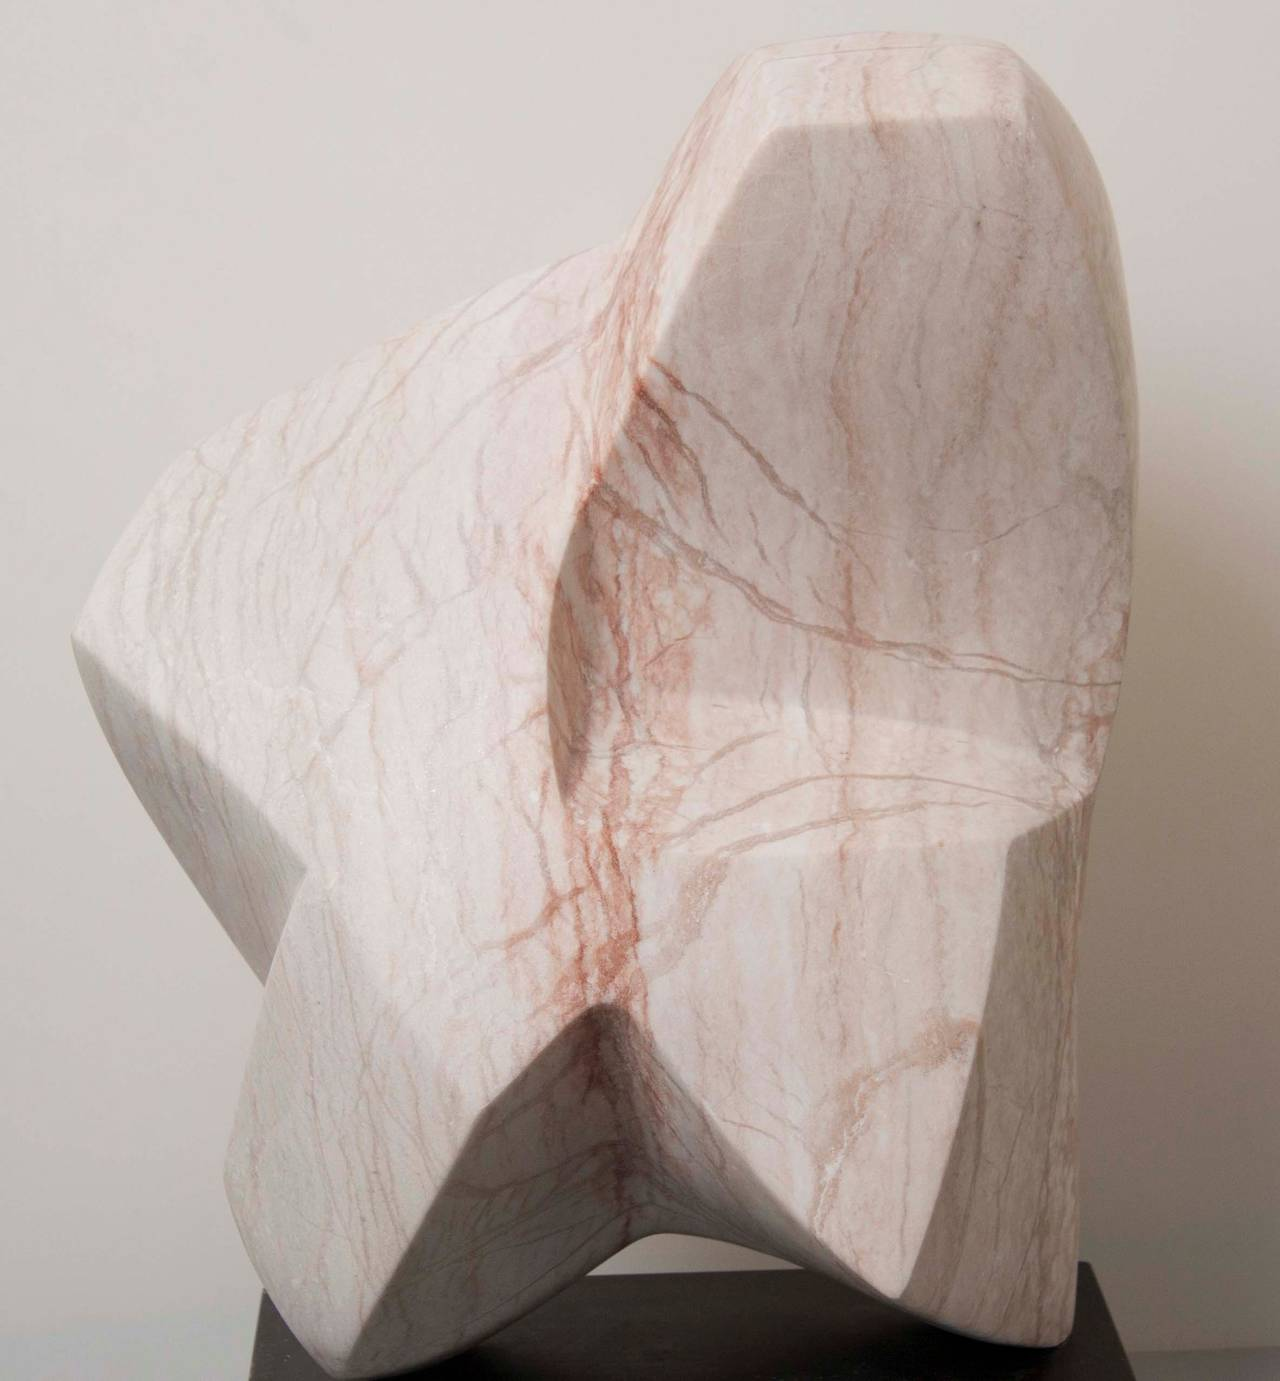 This beautiful marble sculpture by Emile Gilioli is made of rose veined marble (white/pink). The sculpture is signed and dated on wooden base.